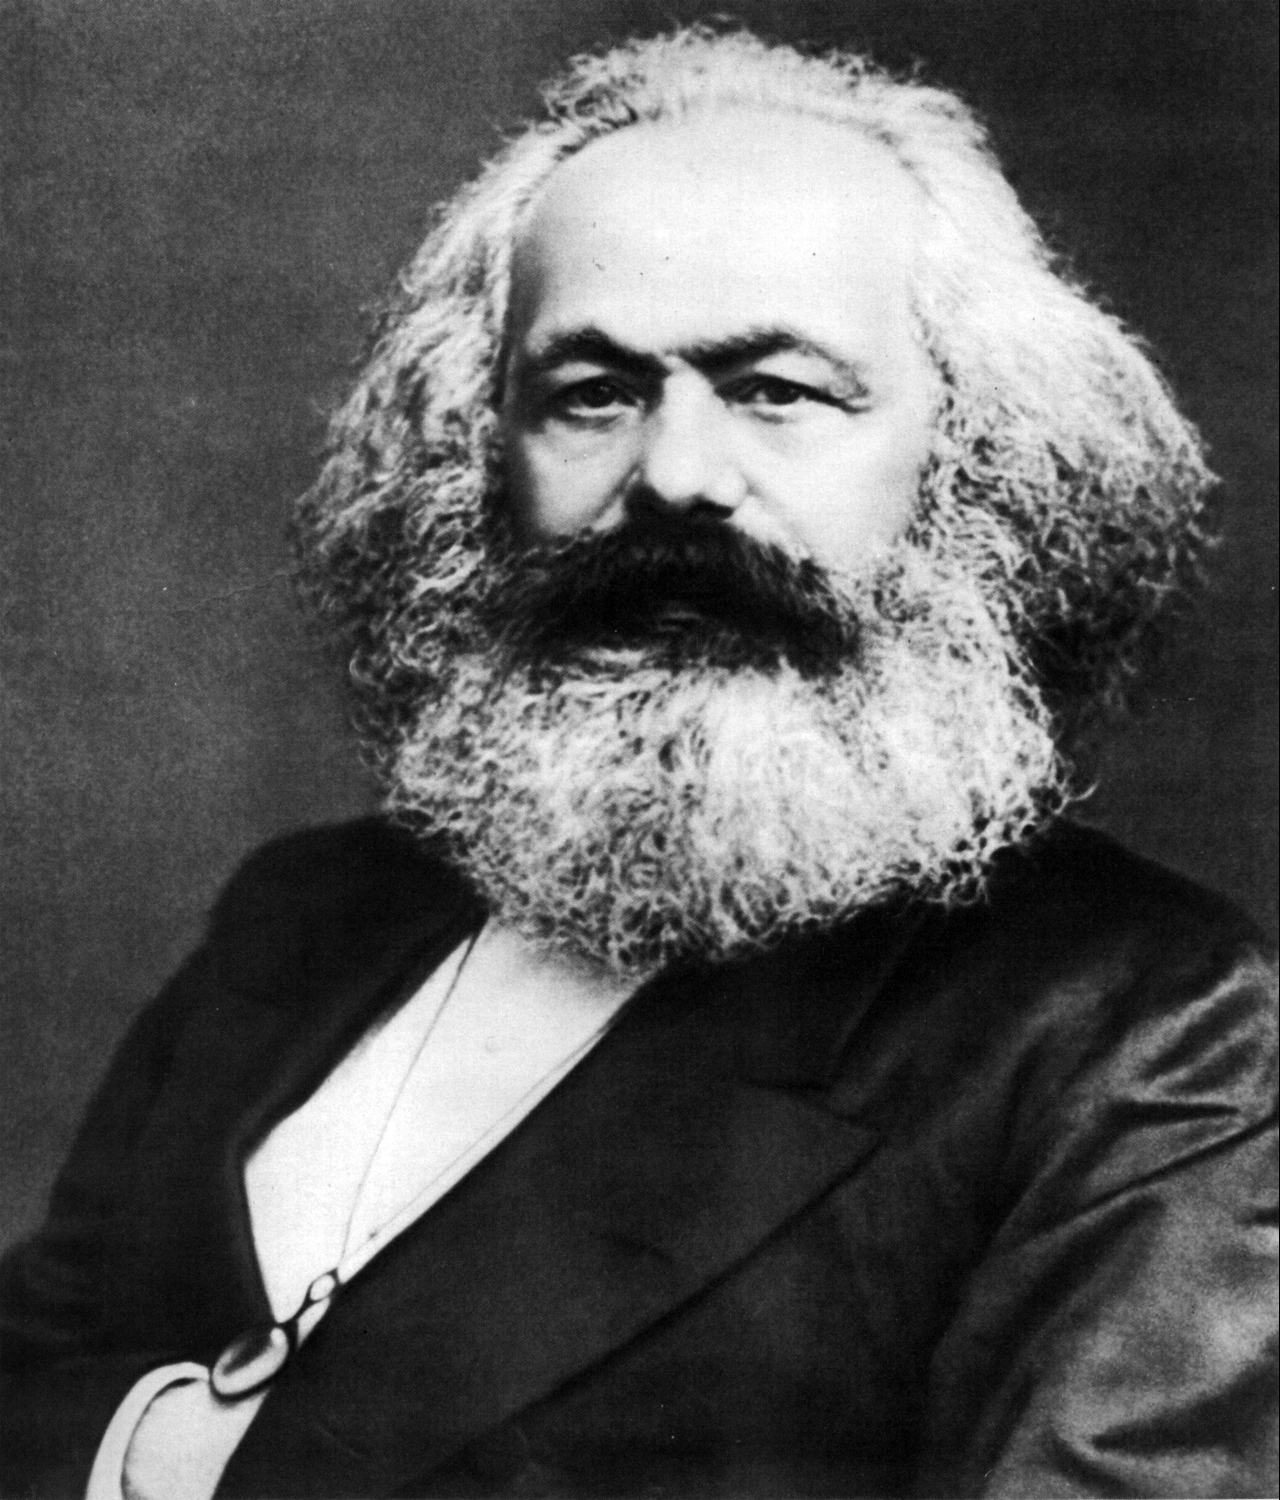 https://upload.wikimedia.org/wikipedia/commons/f/fc/Karl_Marx.jpg